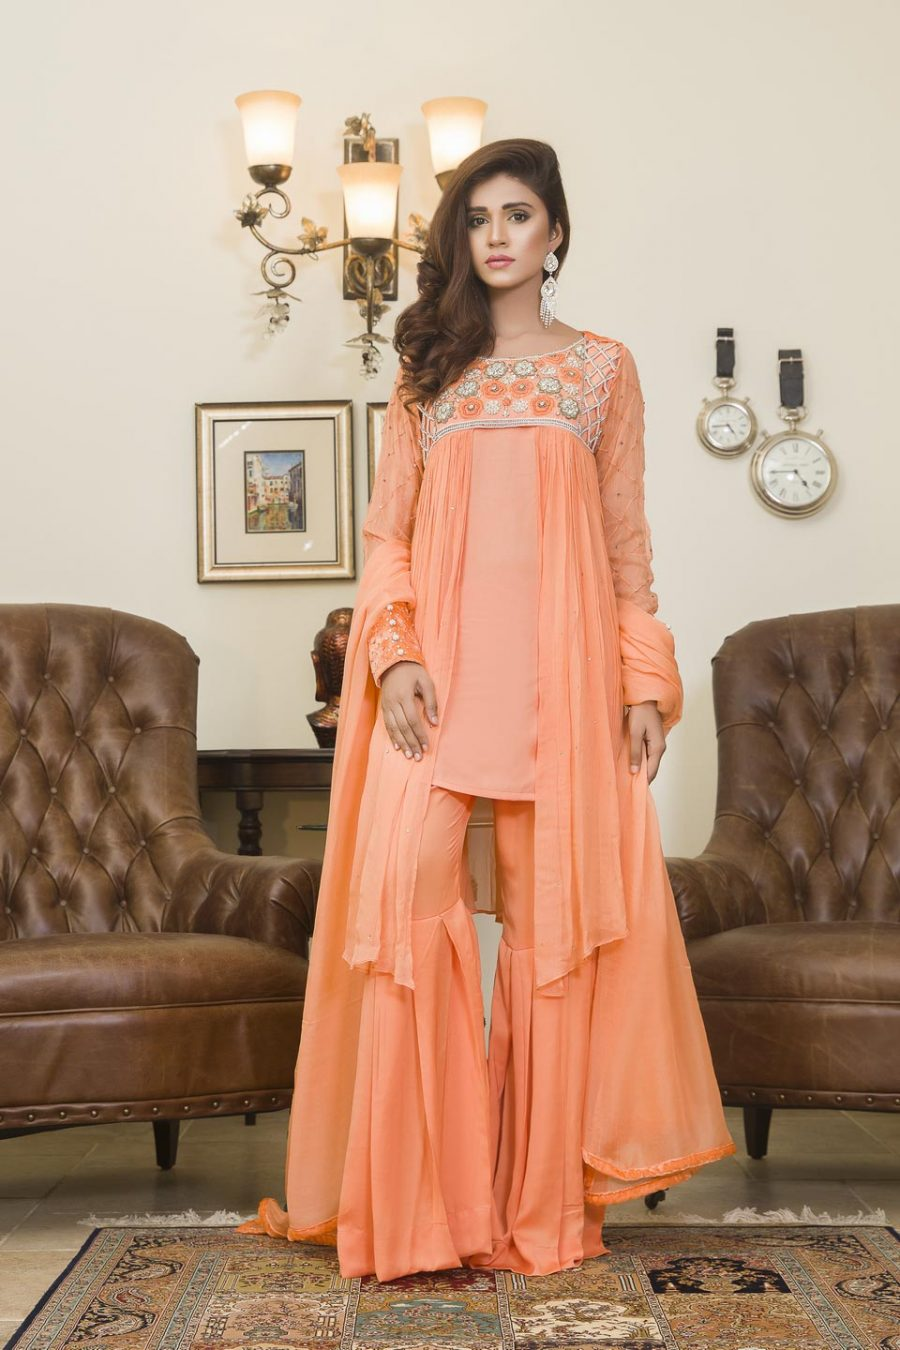 Peach colored pakistani dresses